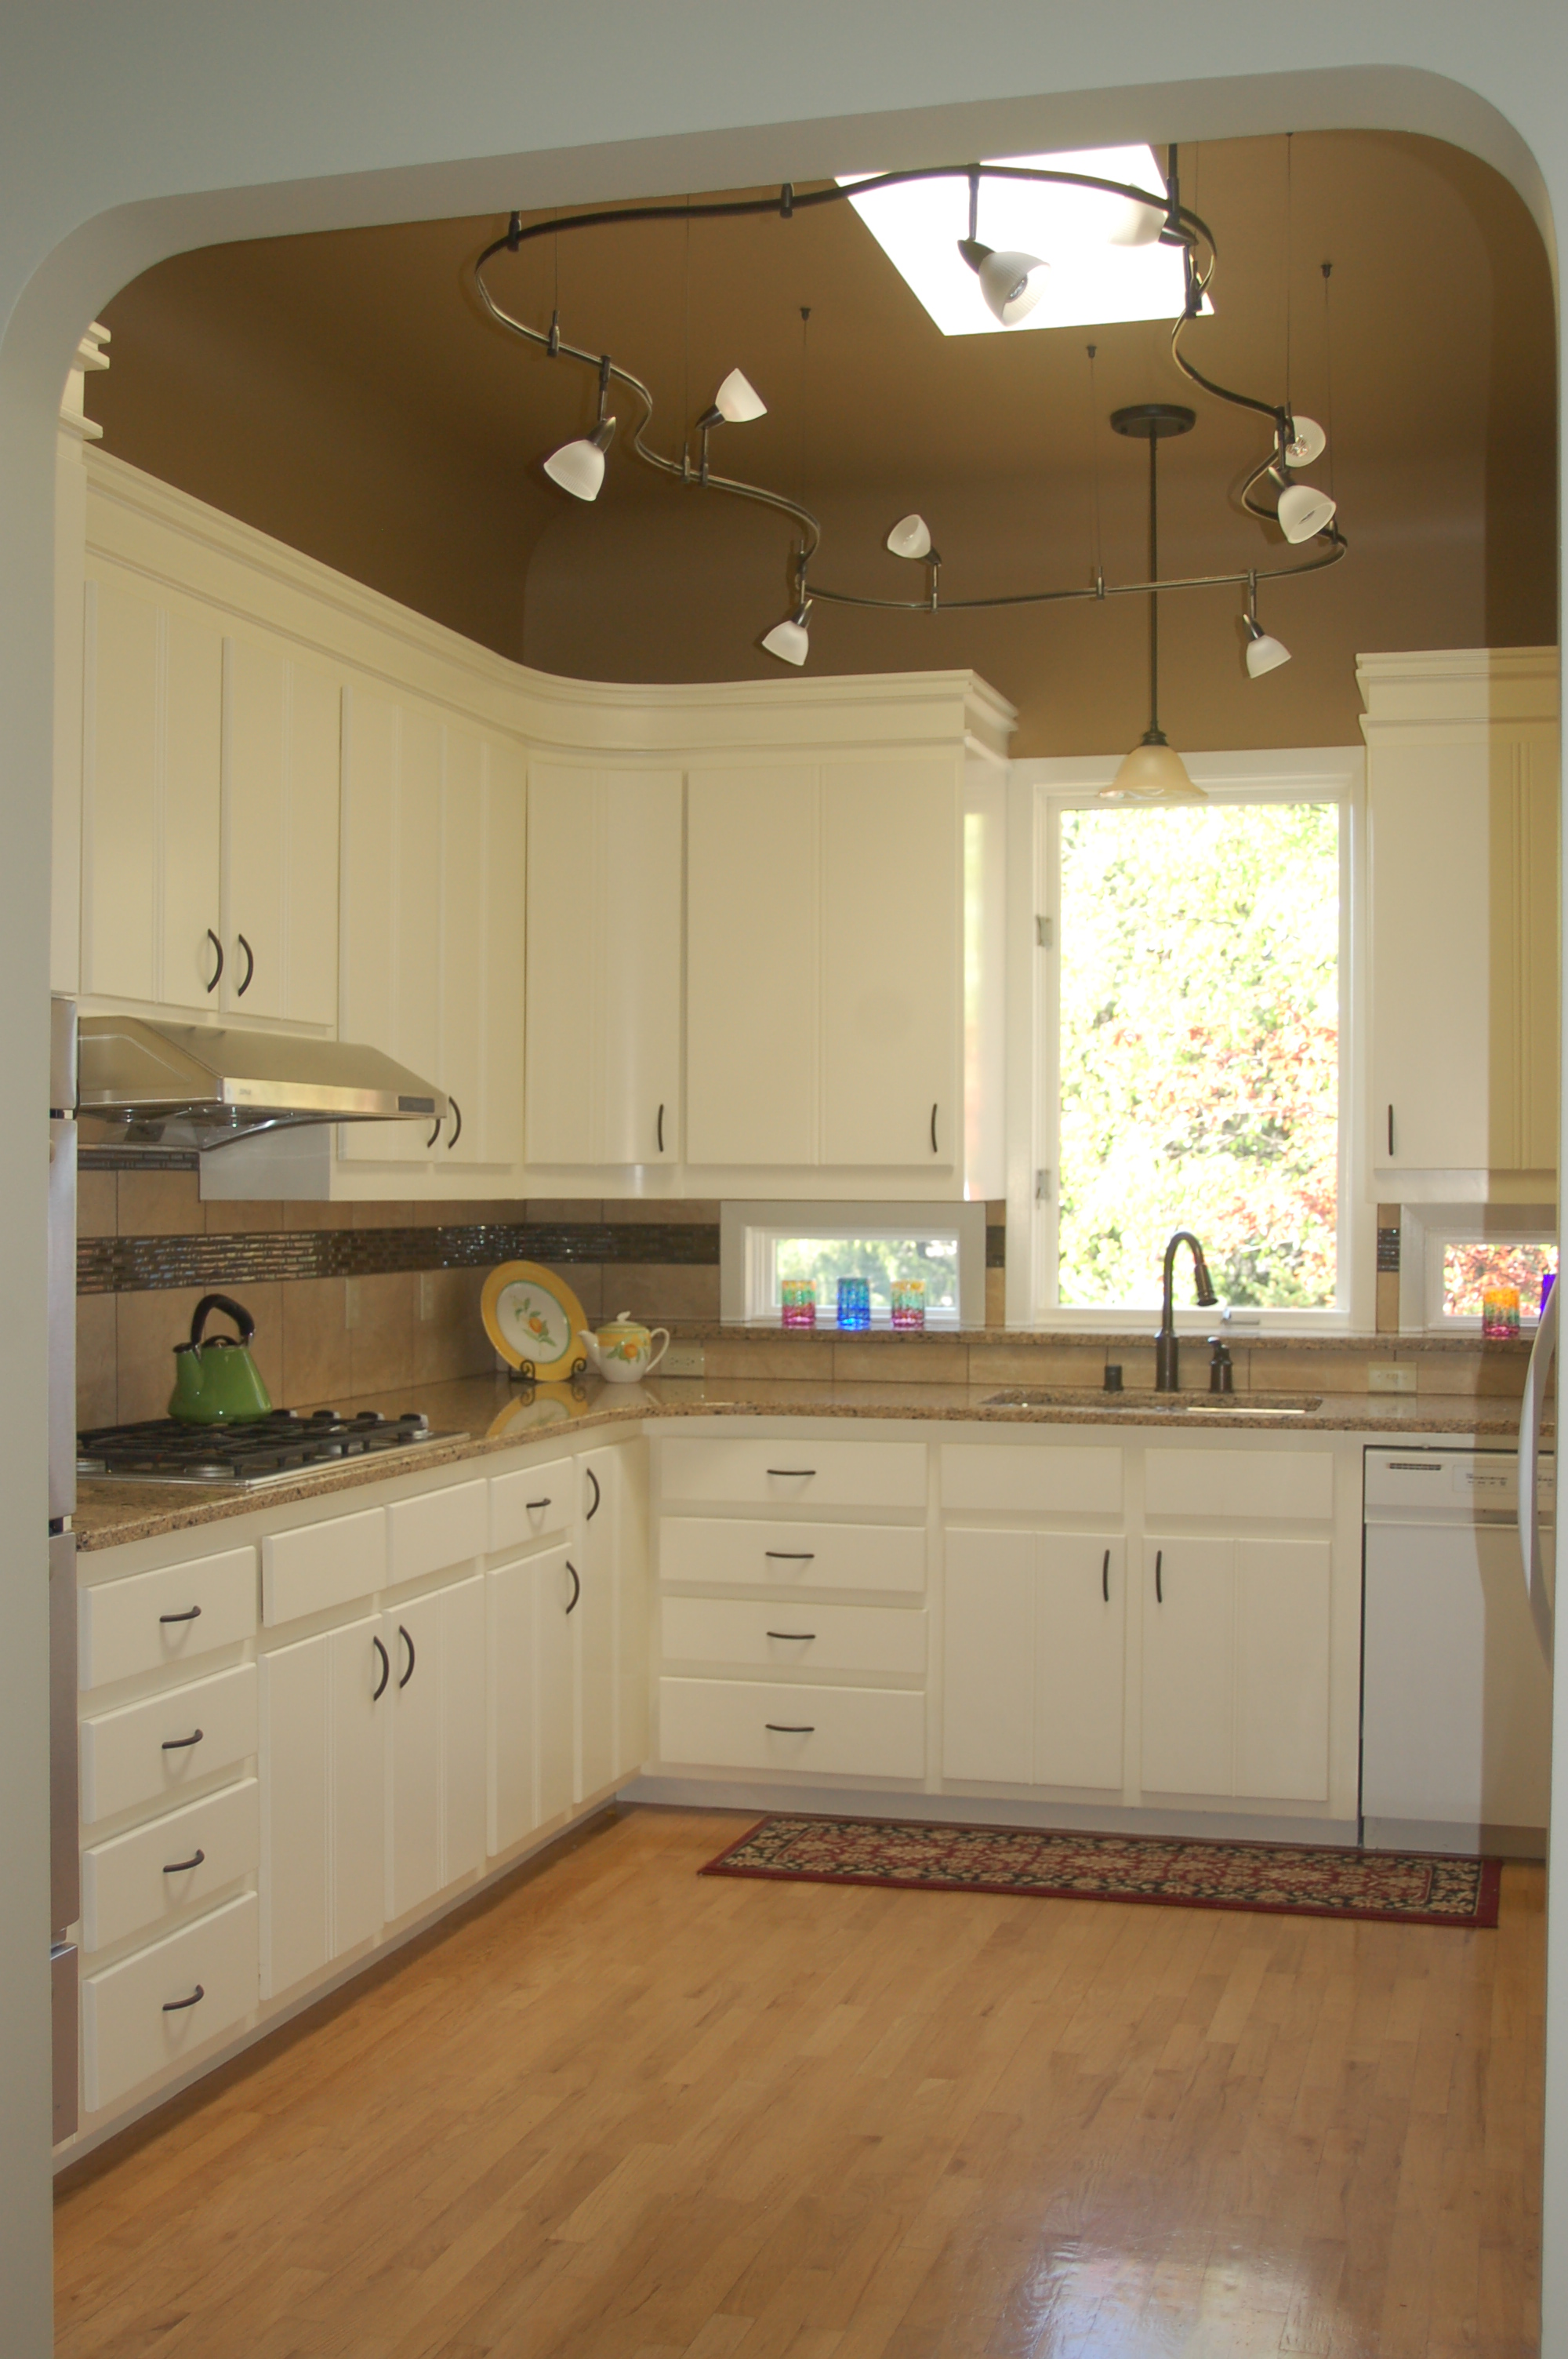 kitchen design with the details in mind kitchen lighting Image Kitchen light